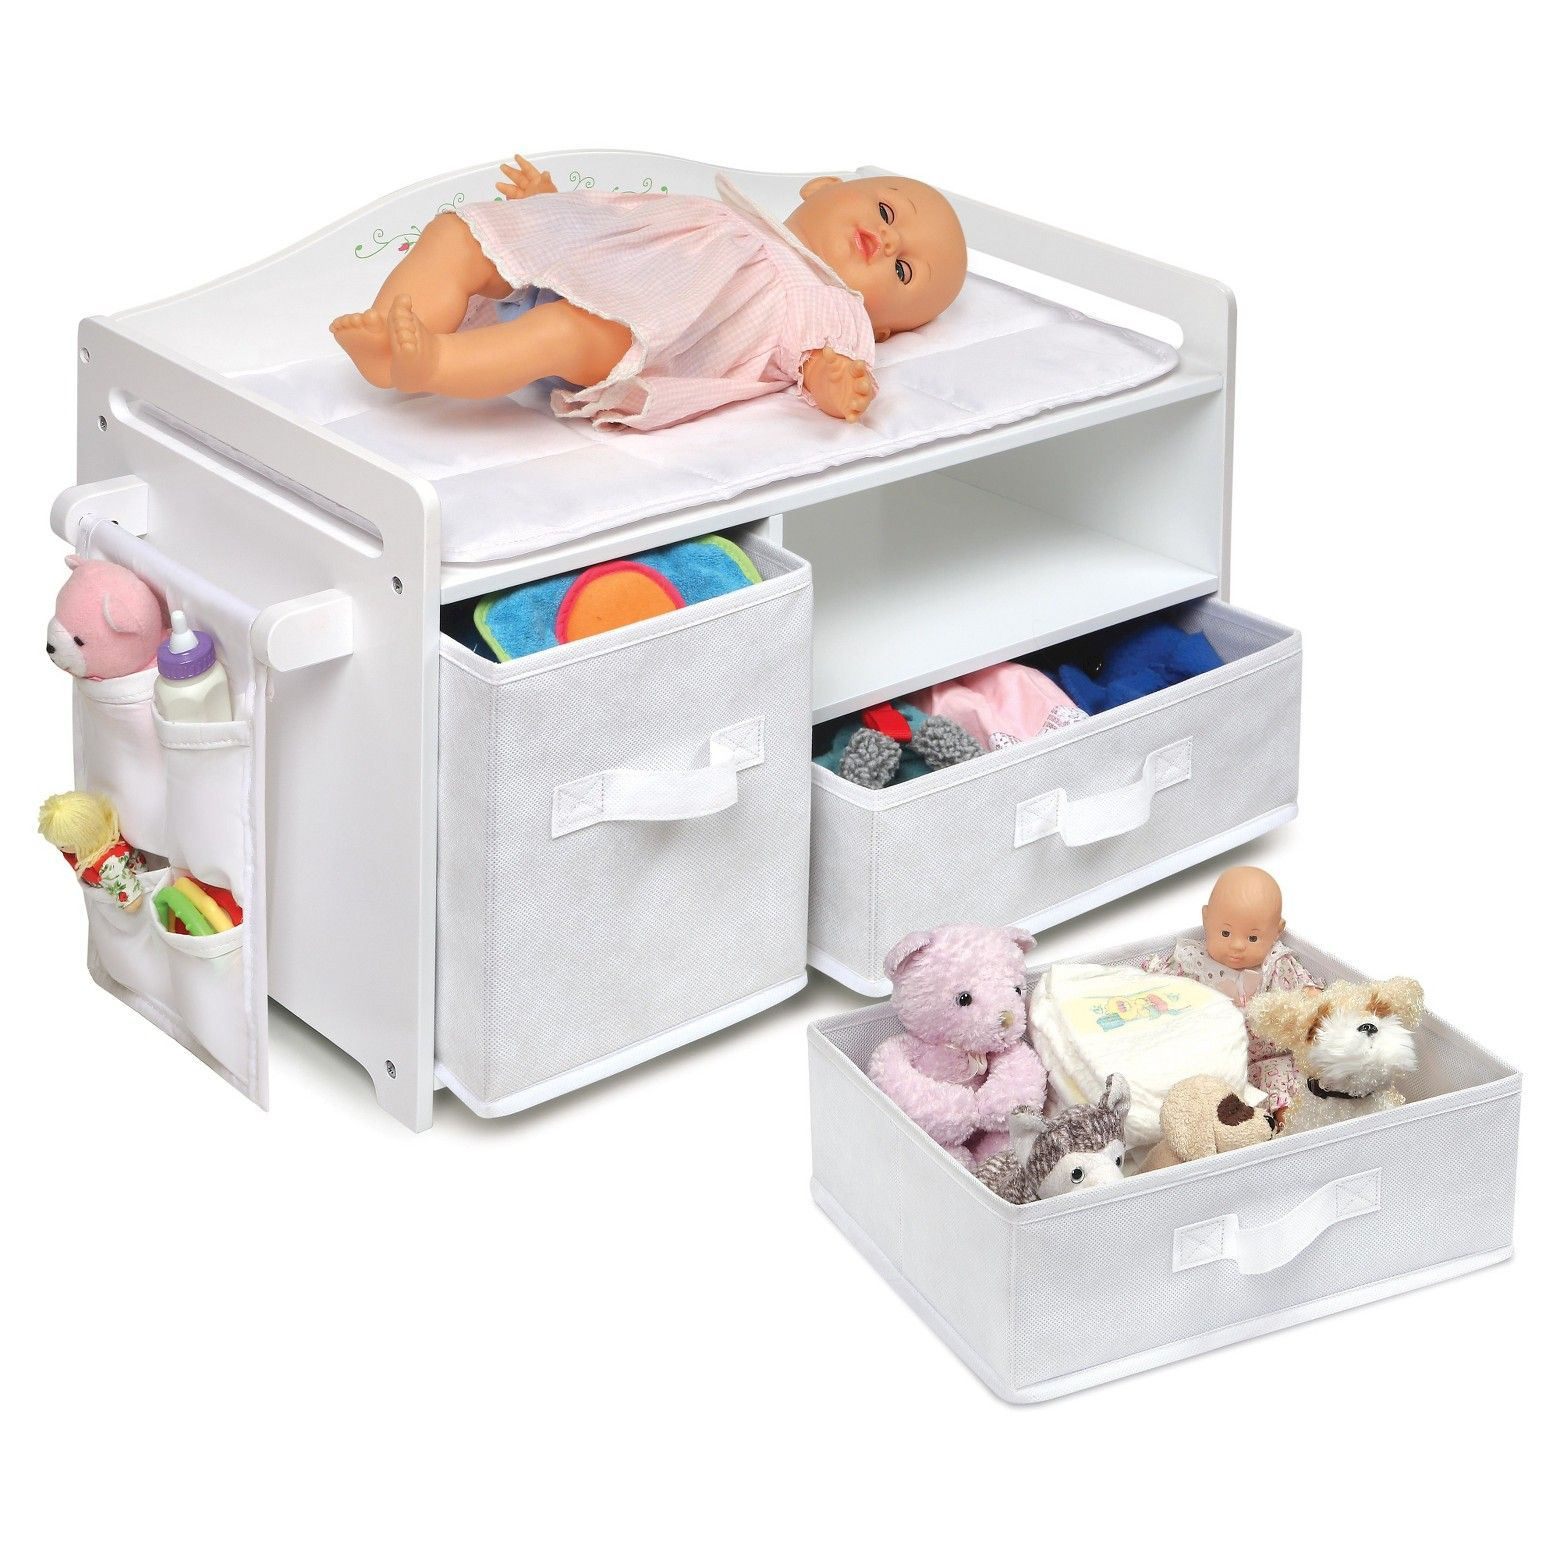 Badger Baskets Doll Care Station Offers One Place For Storing And Amazoncom Snap Circuits Sc300 Electronics Discovery Kit Toys Basket White Rose